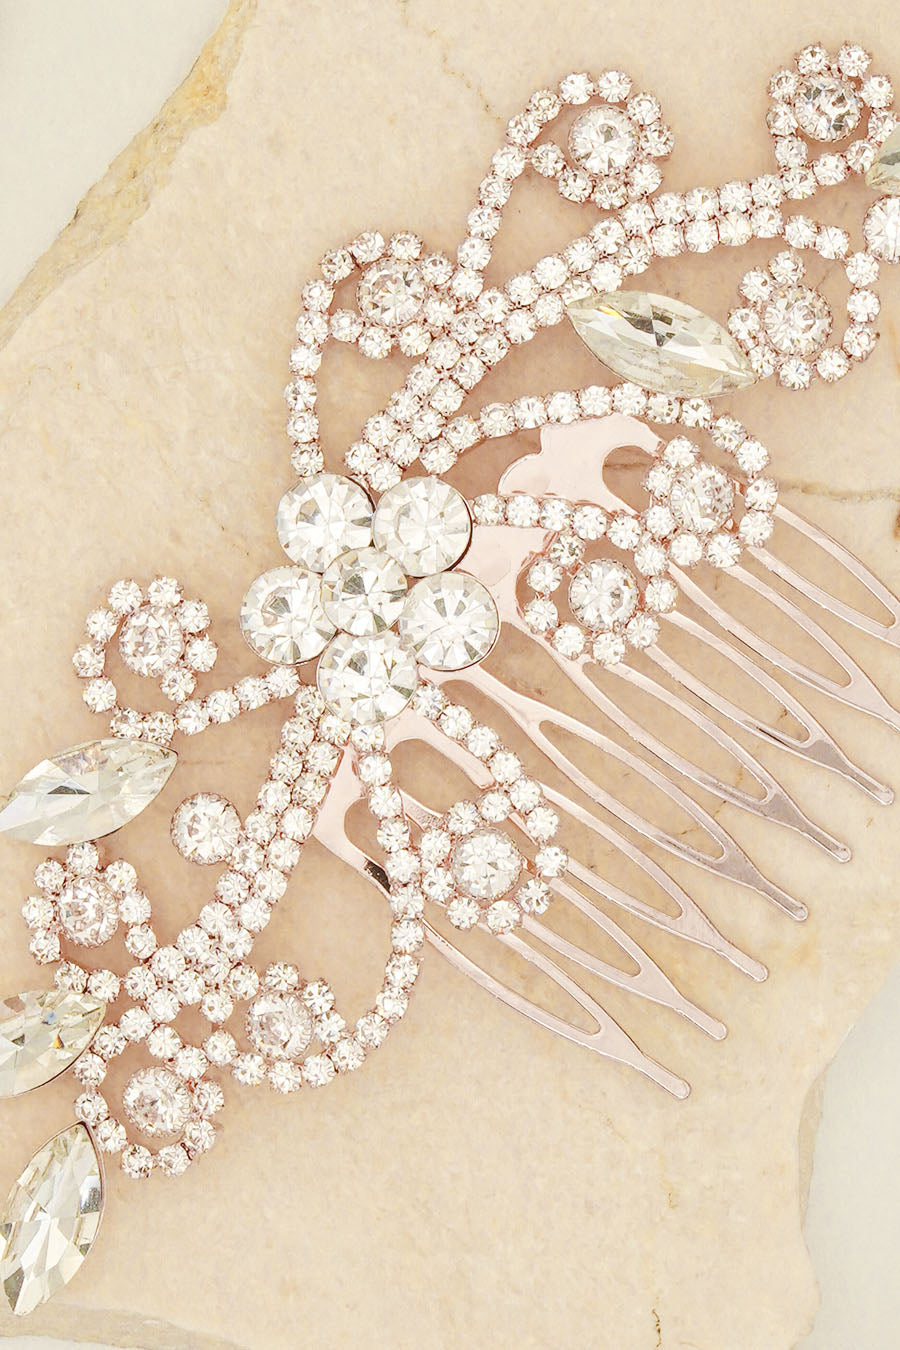 TEARDROP RHINESTONE AND SMALL DIAMANTES HAIR COMBS BRIDAL HEADPIECE FOR WEDDING PARTY BY NARIANNA